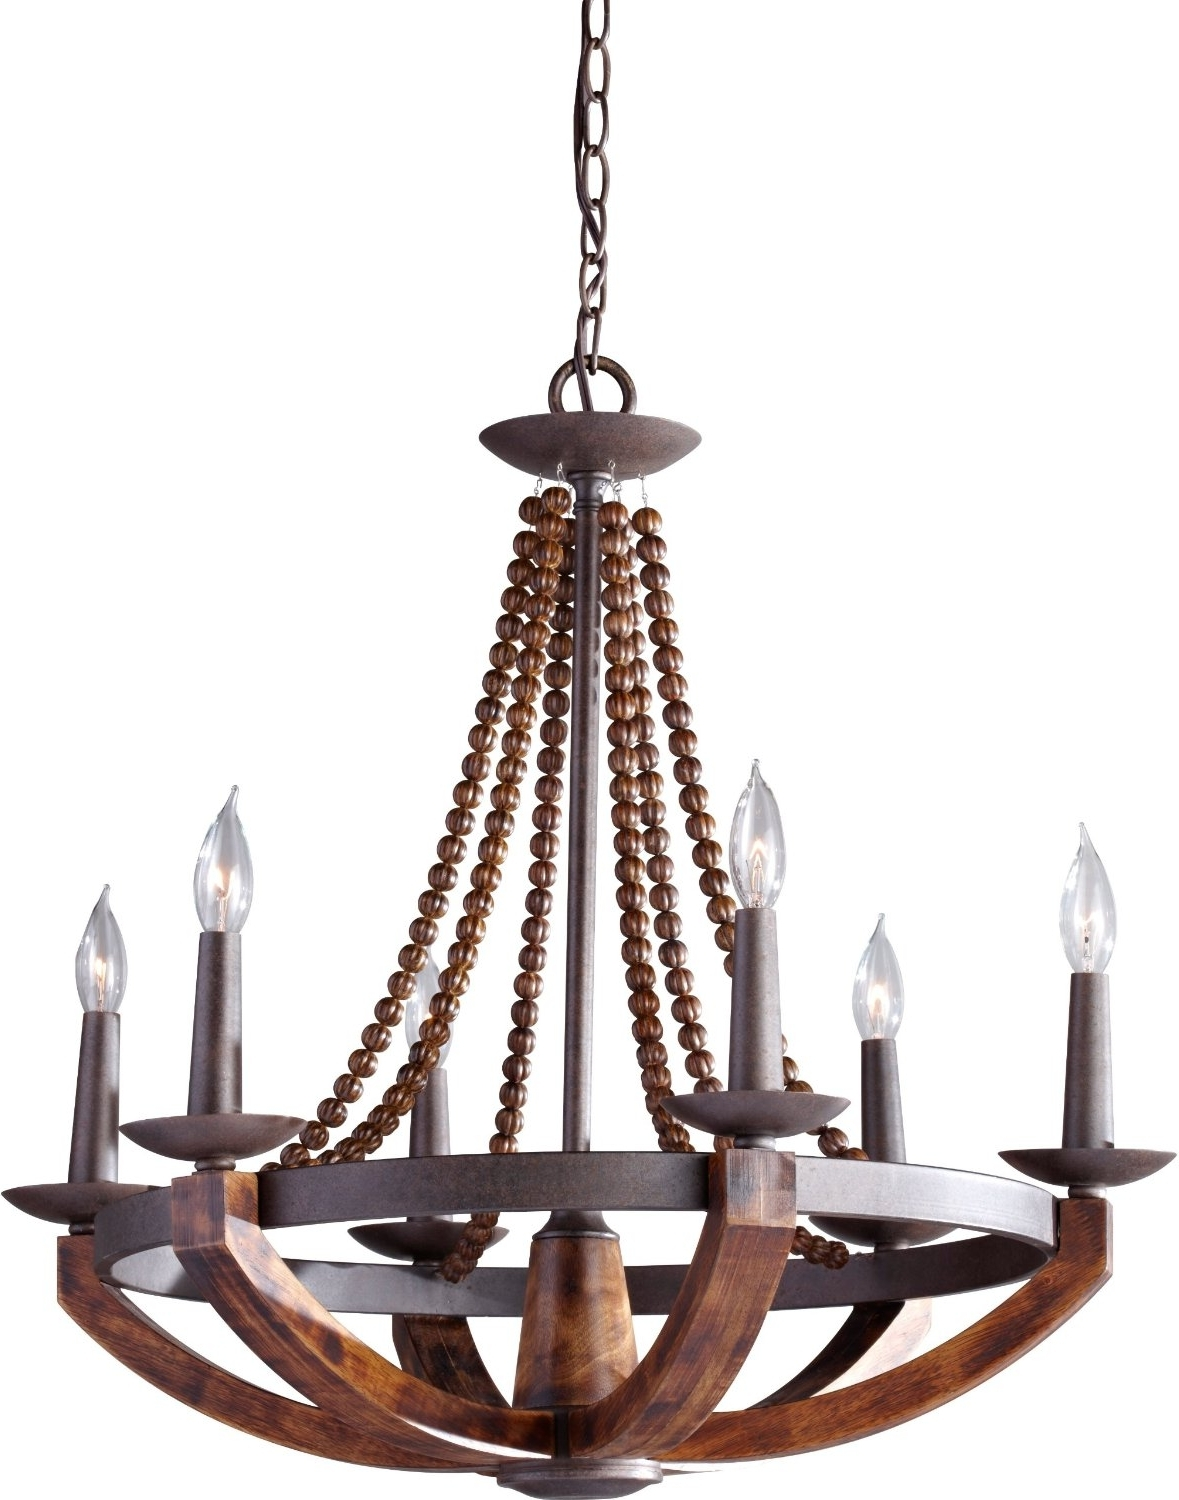 Trendy Cast Iron Chandelier Within 12 Best Rustic Wood And Metal Chandeliers (View 11 of 15)